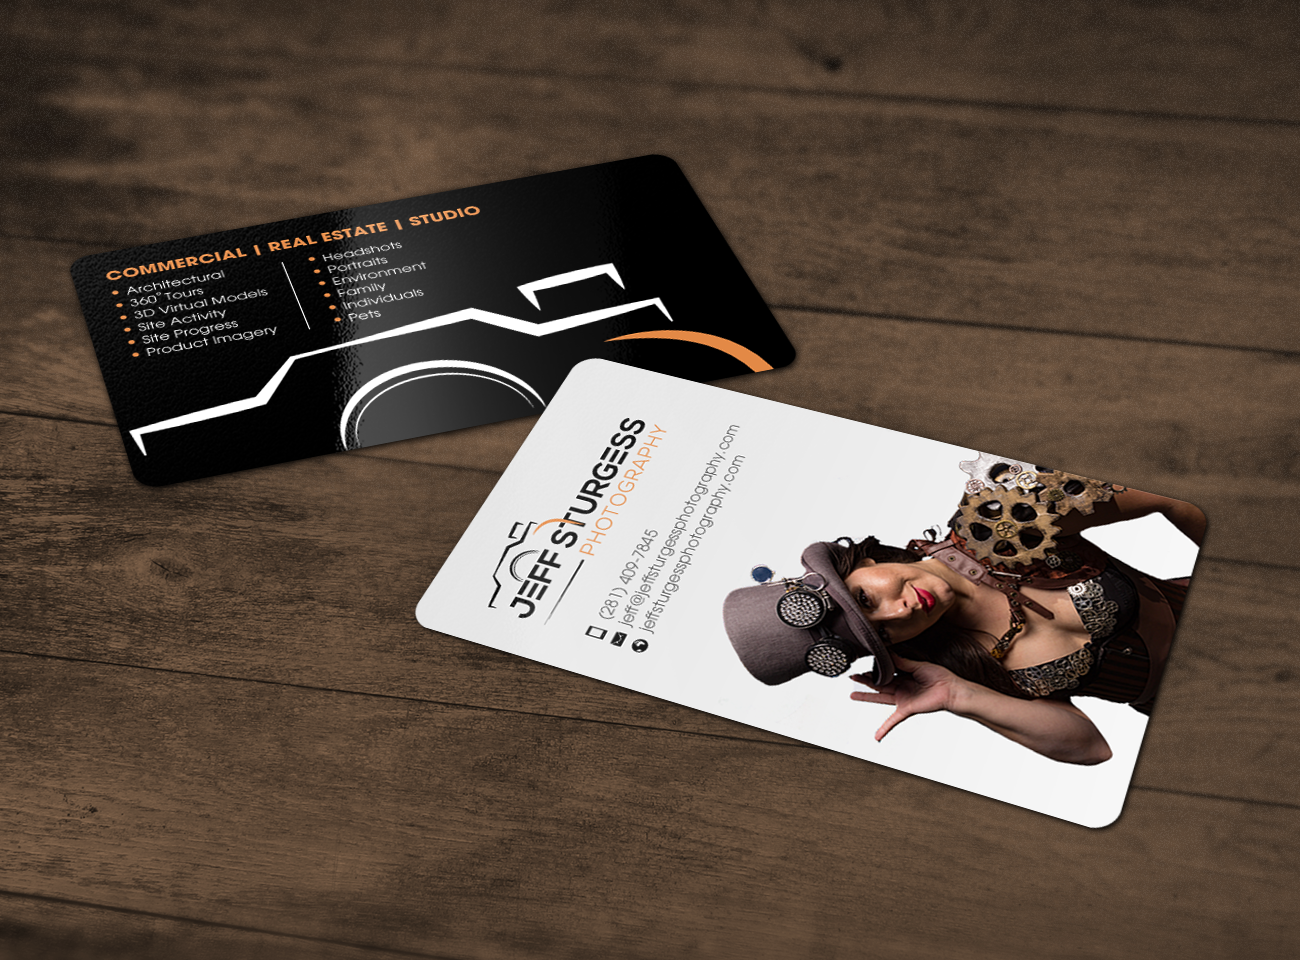 40 serious business card designs professional photography business business card design by chandrayaaneative for jeff sturgess photography llc design colourmoves